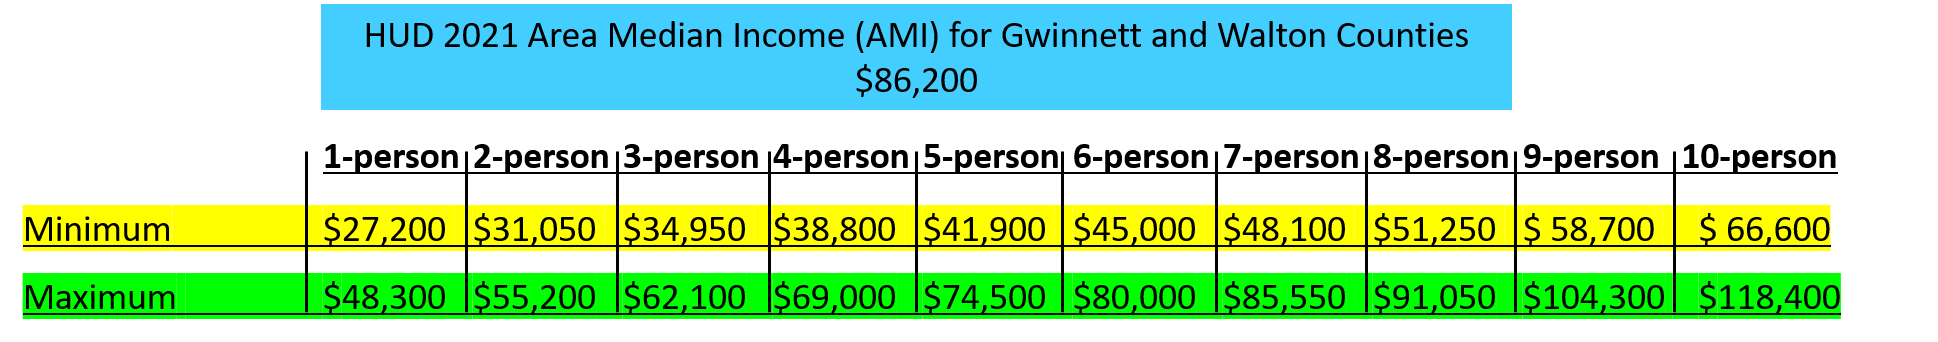 HUD Income calculations image 2021